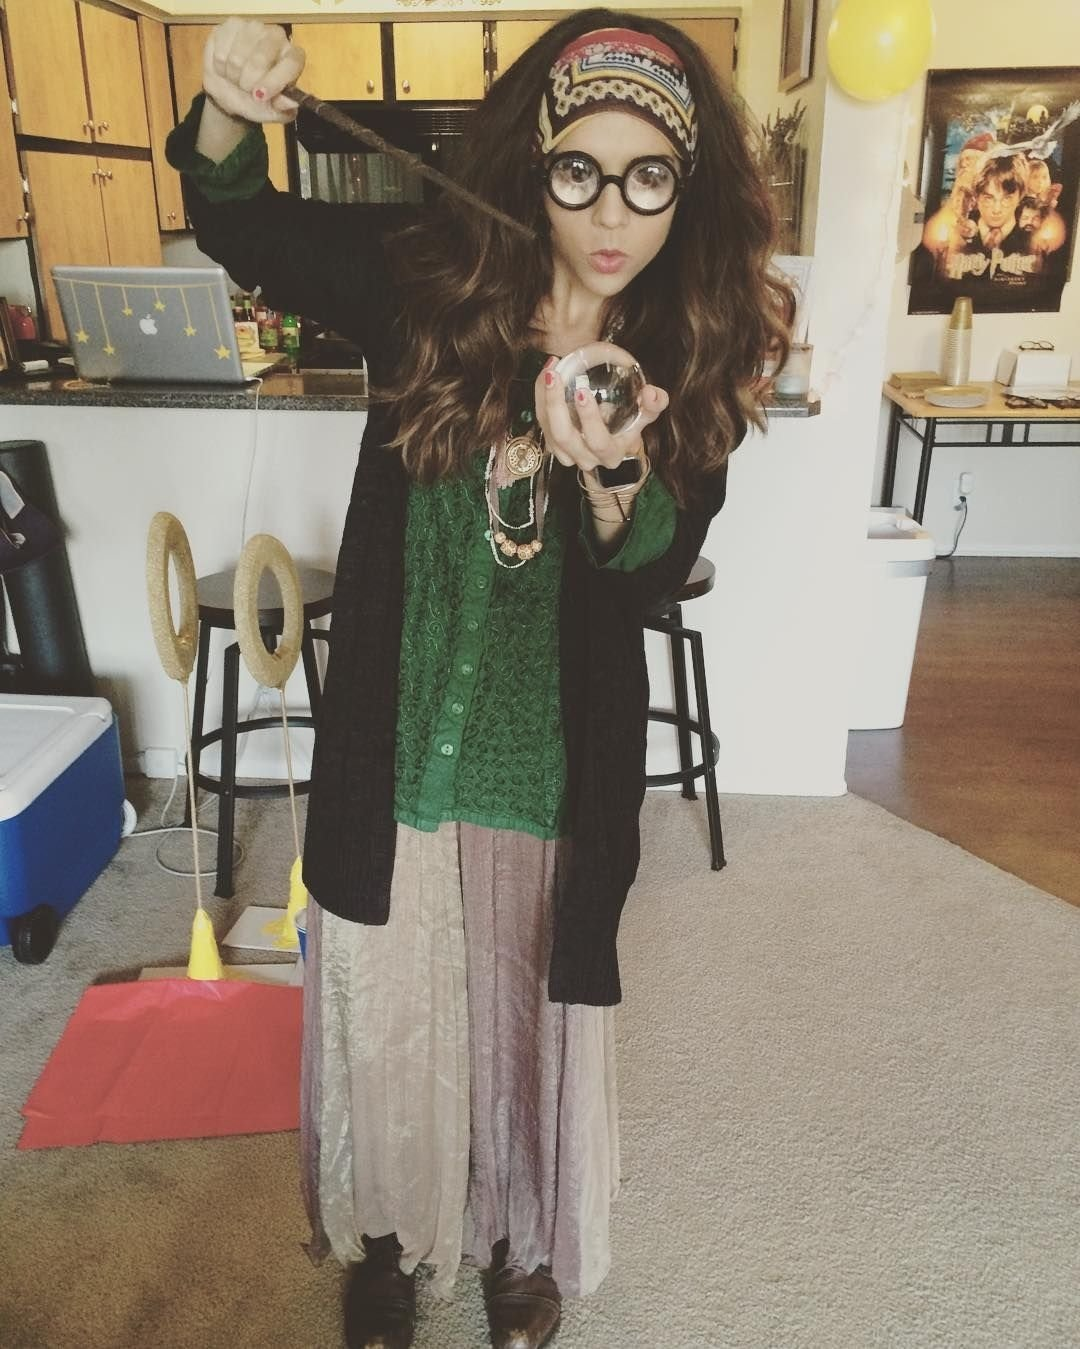 10 Cute Character Day Ideas For Girls 24 costume ideas for girls with glasses halloween pinterest 2020